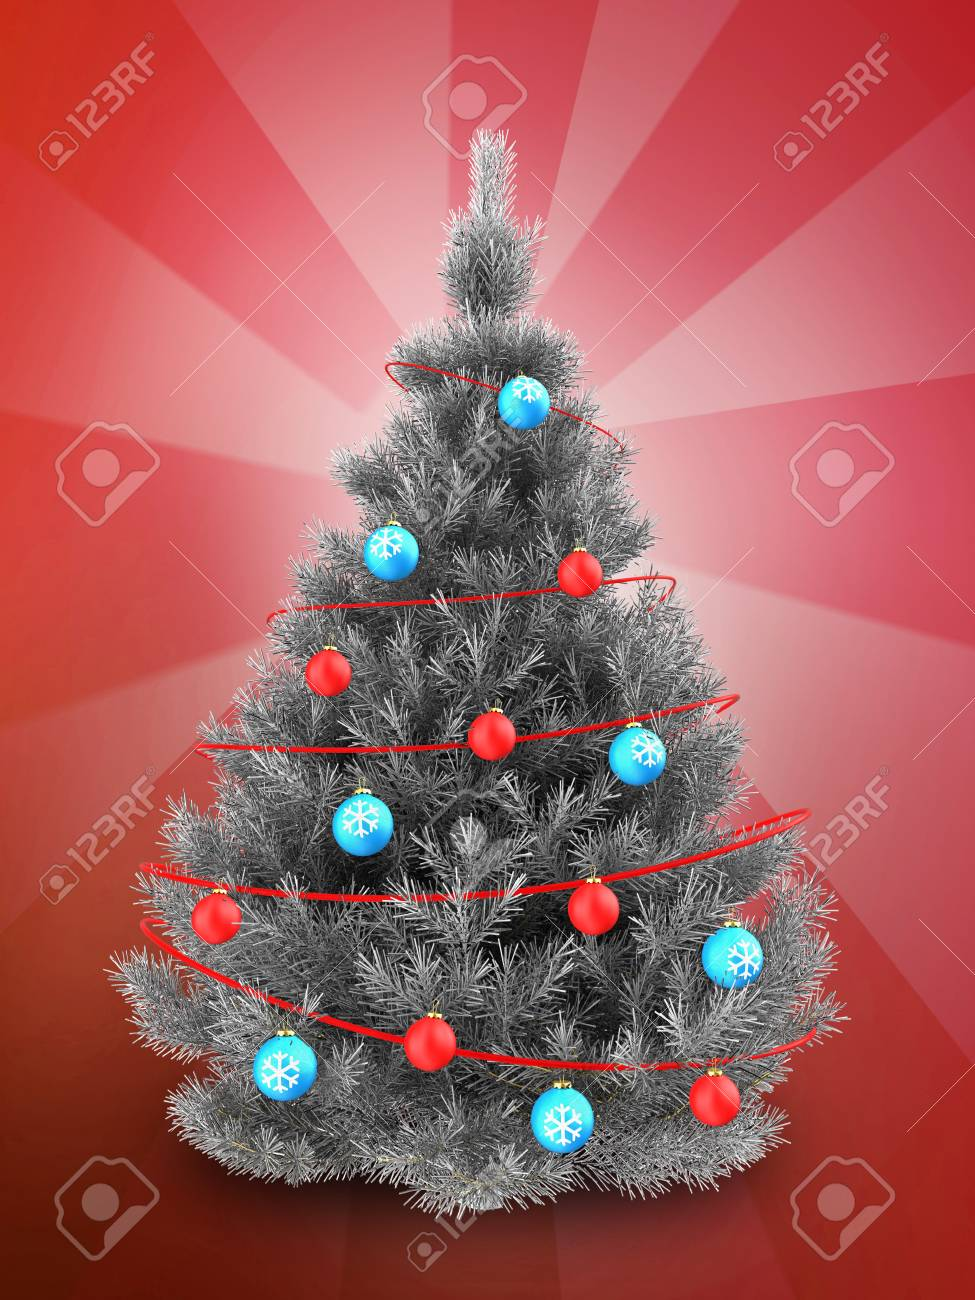 3d illustration of silver christmas tree with blue balls over red background stock illustration 88350168 - Red And Silver Christmas Tree